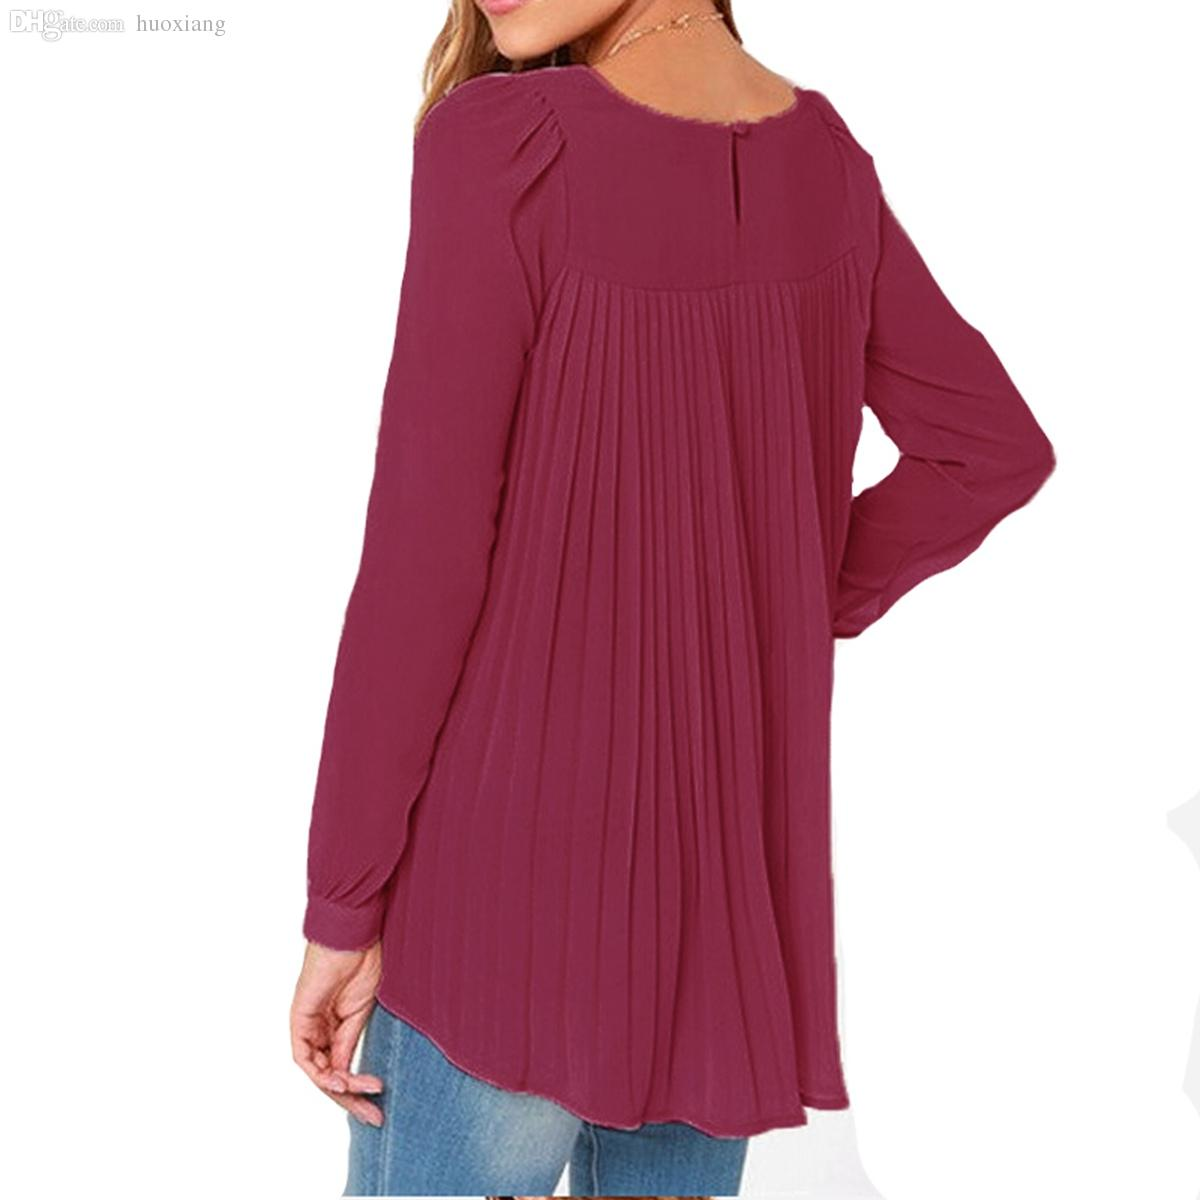 ac34c7f75d14 Wholesale-New Zanzea 2016 Summer Style Women Sexy Casual Loose Chiffon Tops Long  Sleeve Solid Shirts Ladies Blouses Plus Size Blusas Blouse Collar Blouse ...